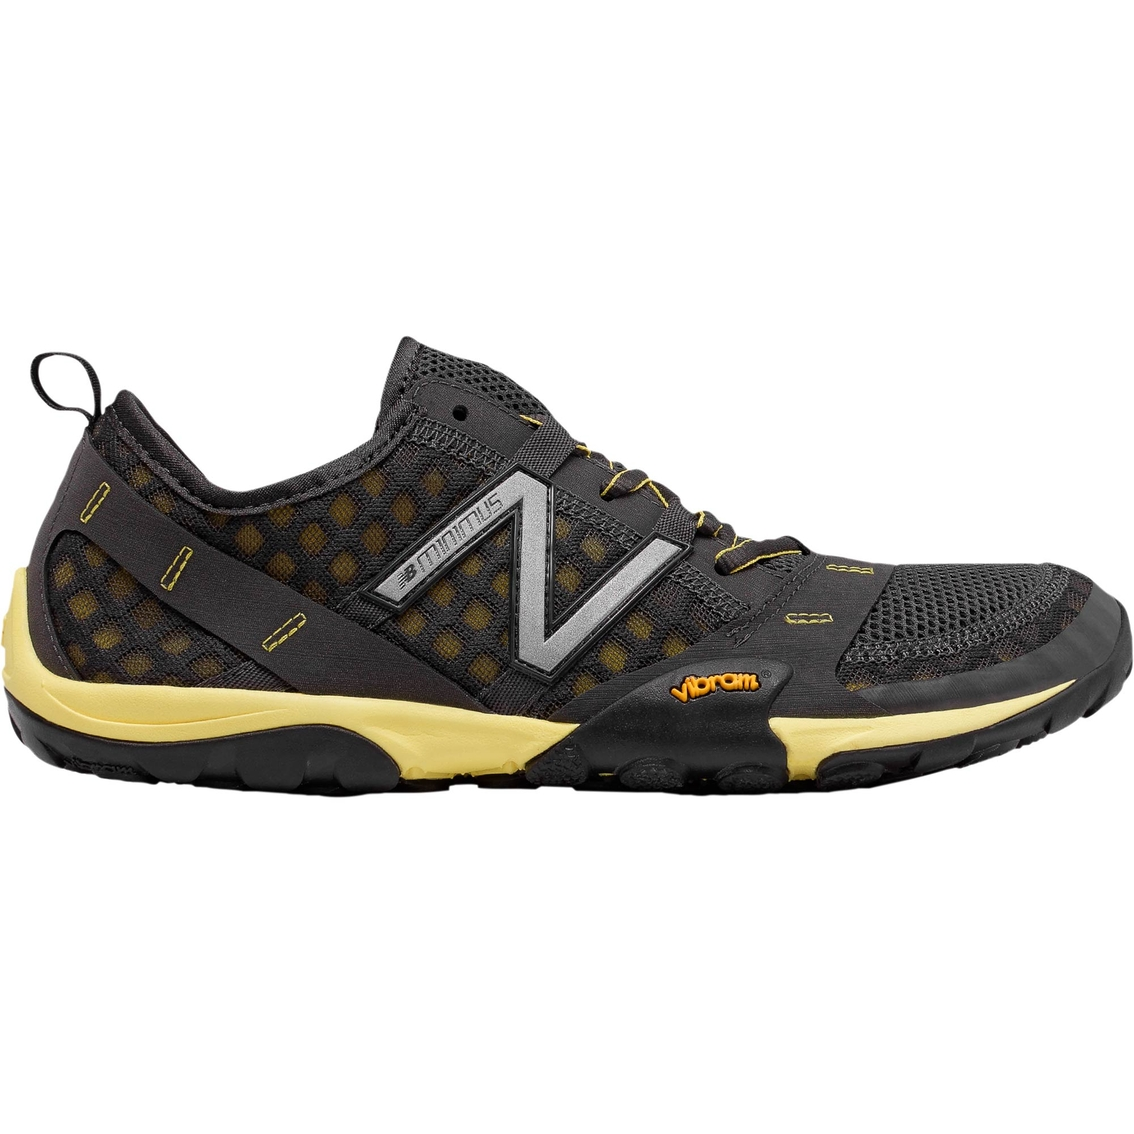 ballet blanco unos pocos  New Balance Men's Mt10gg Minimus Training Shoes | Hiking & Trail | Shoes |  Shop The Exchange